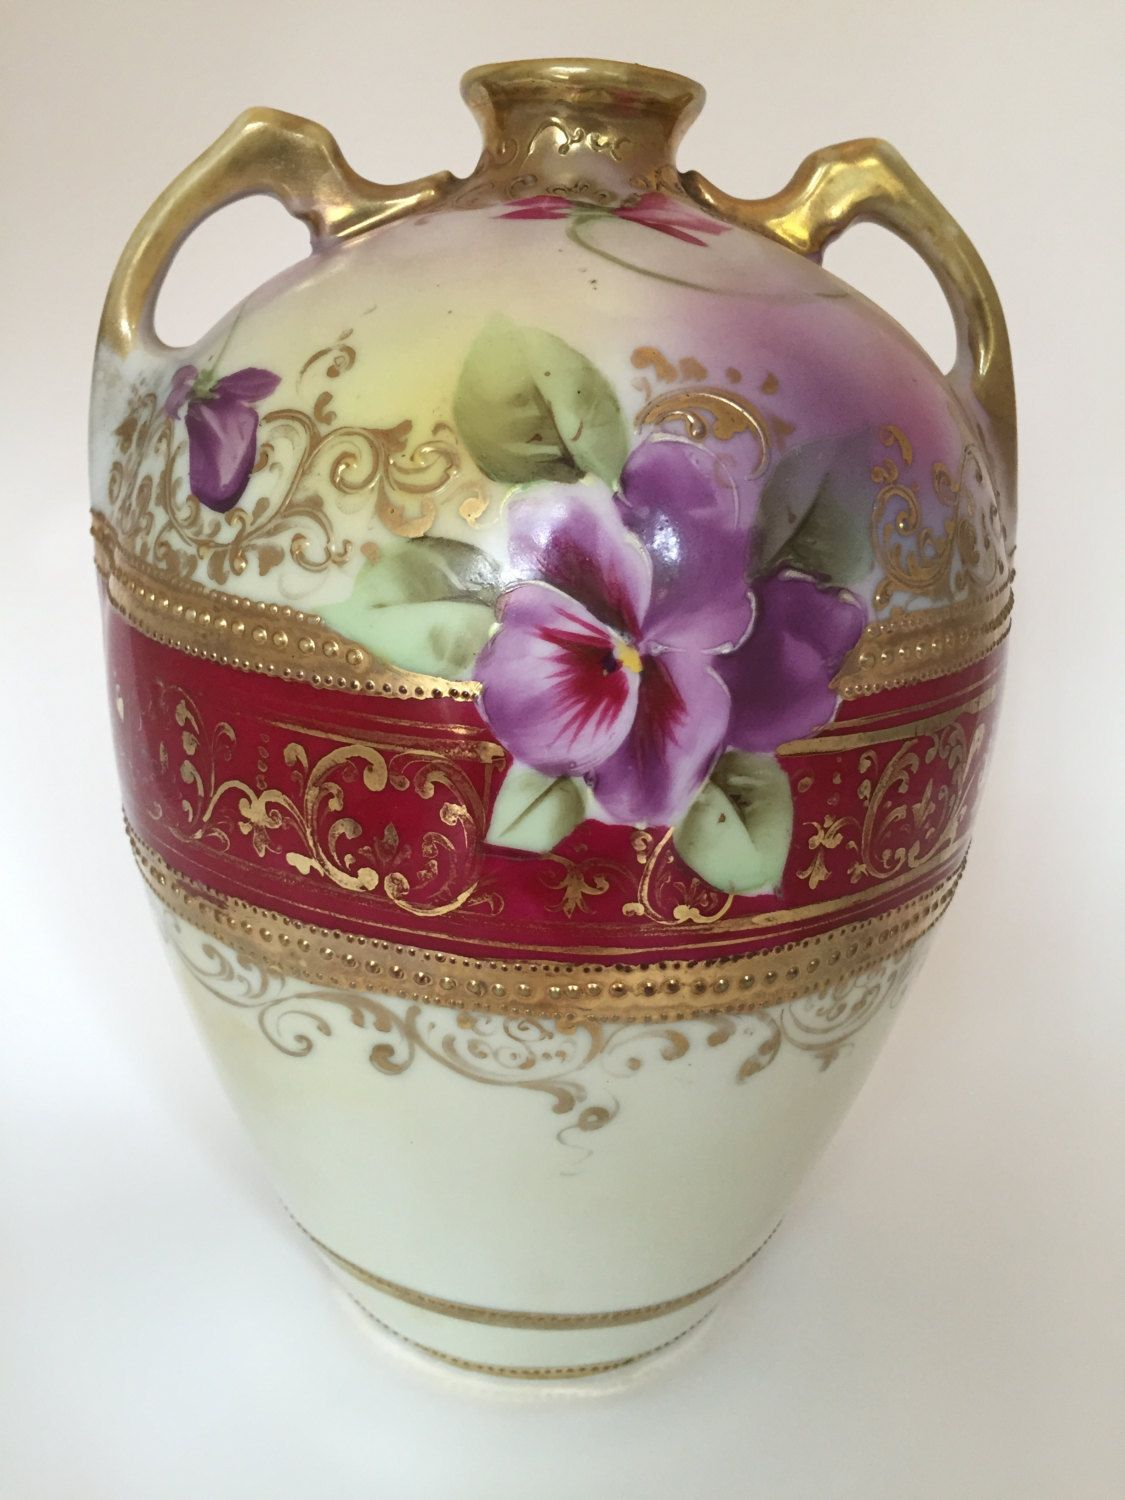 Antique nippon vase hand painted flowers with gold moriage accent antique nippon vase hand painted flowers with gold moriage accent by jfrmre on etsy antique nippon reviewsmspy